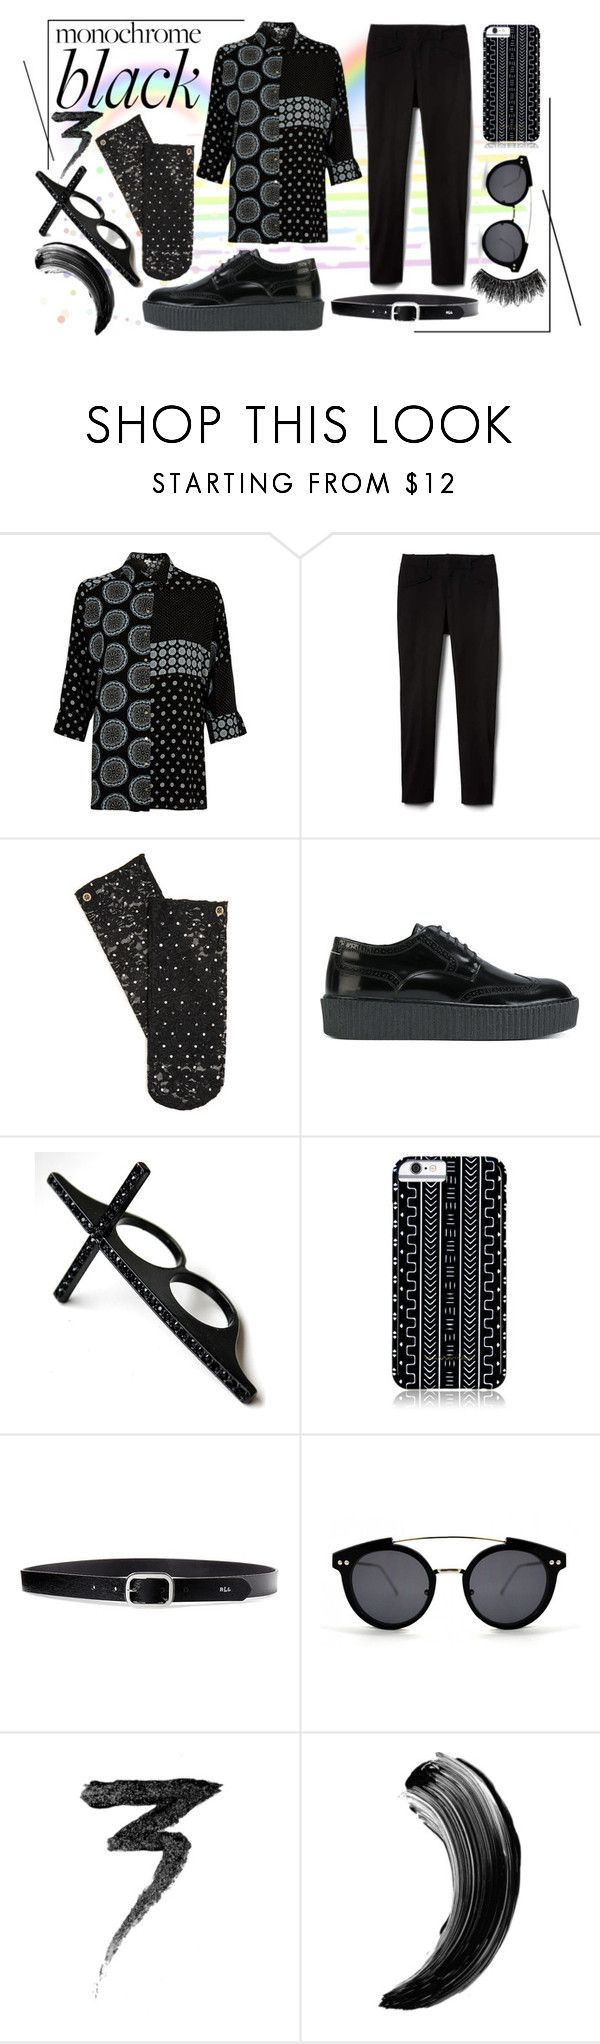 """Androgynous and Fabulous"" by masquerademan on Polyvore featuring River Island, Stance, MM6 Maison Margiela, Savannah Hayes, Lauren Ralph Lauren, Spitfire, Manic Panic NYC and Illamasqua"